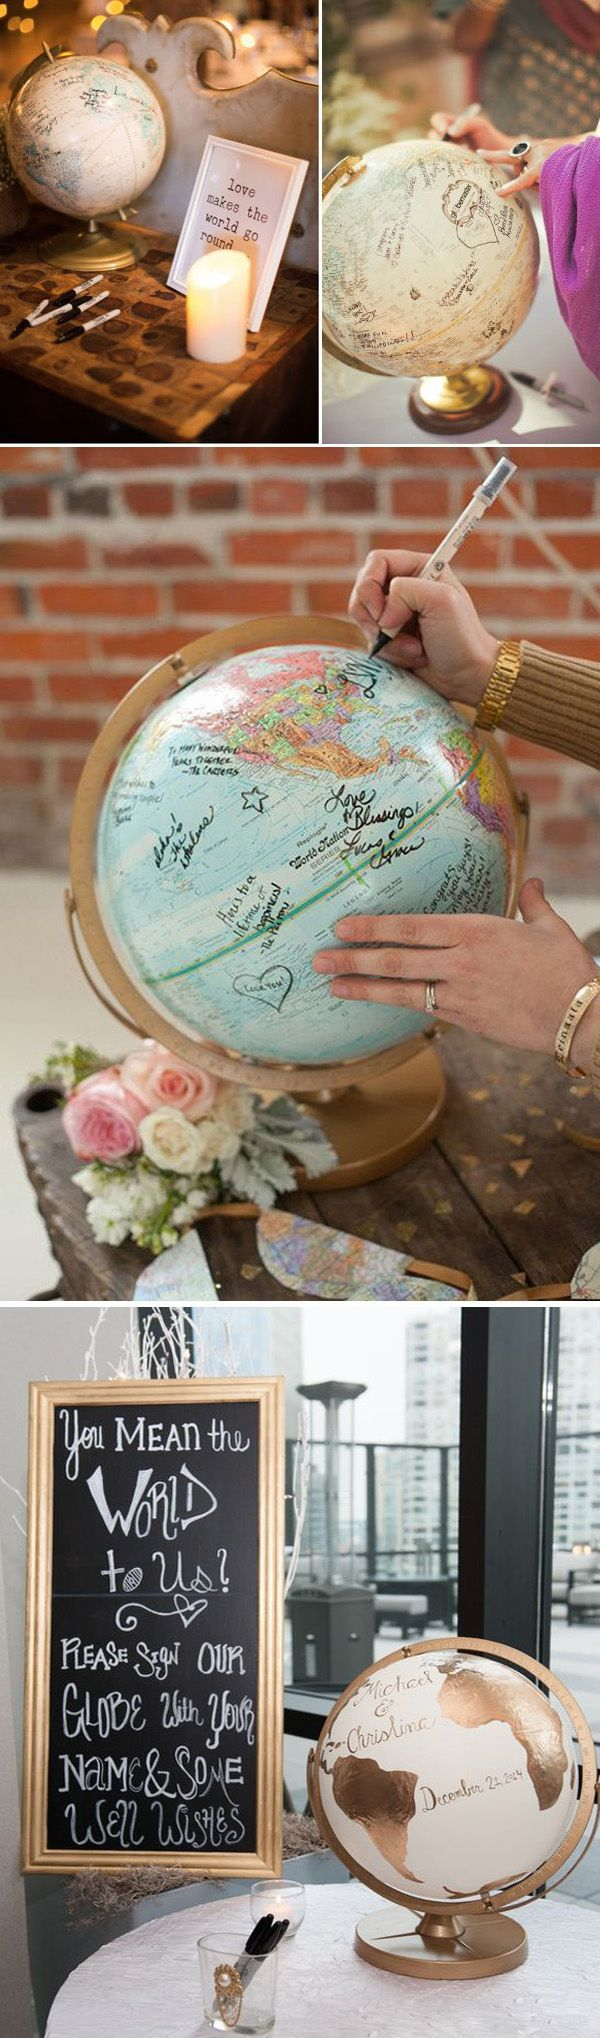 See where in the world your guests traveled from to celebrate your wedding day with this creative DIY globe guestbook.